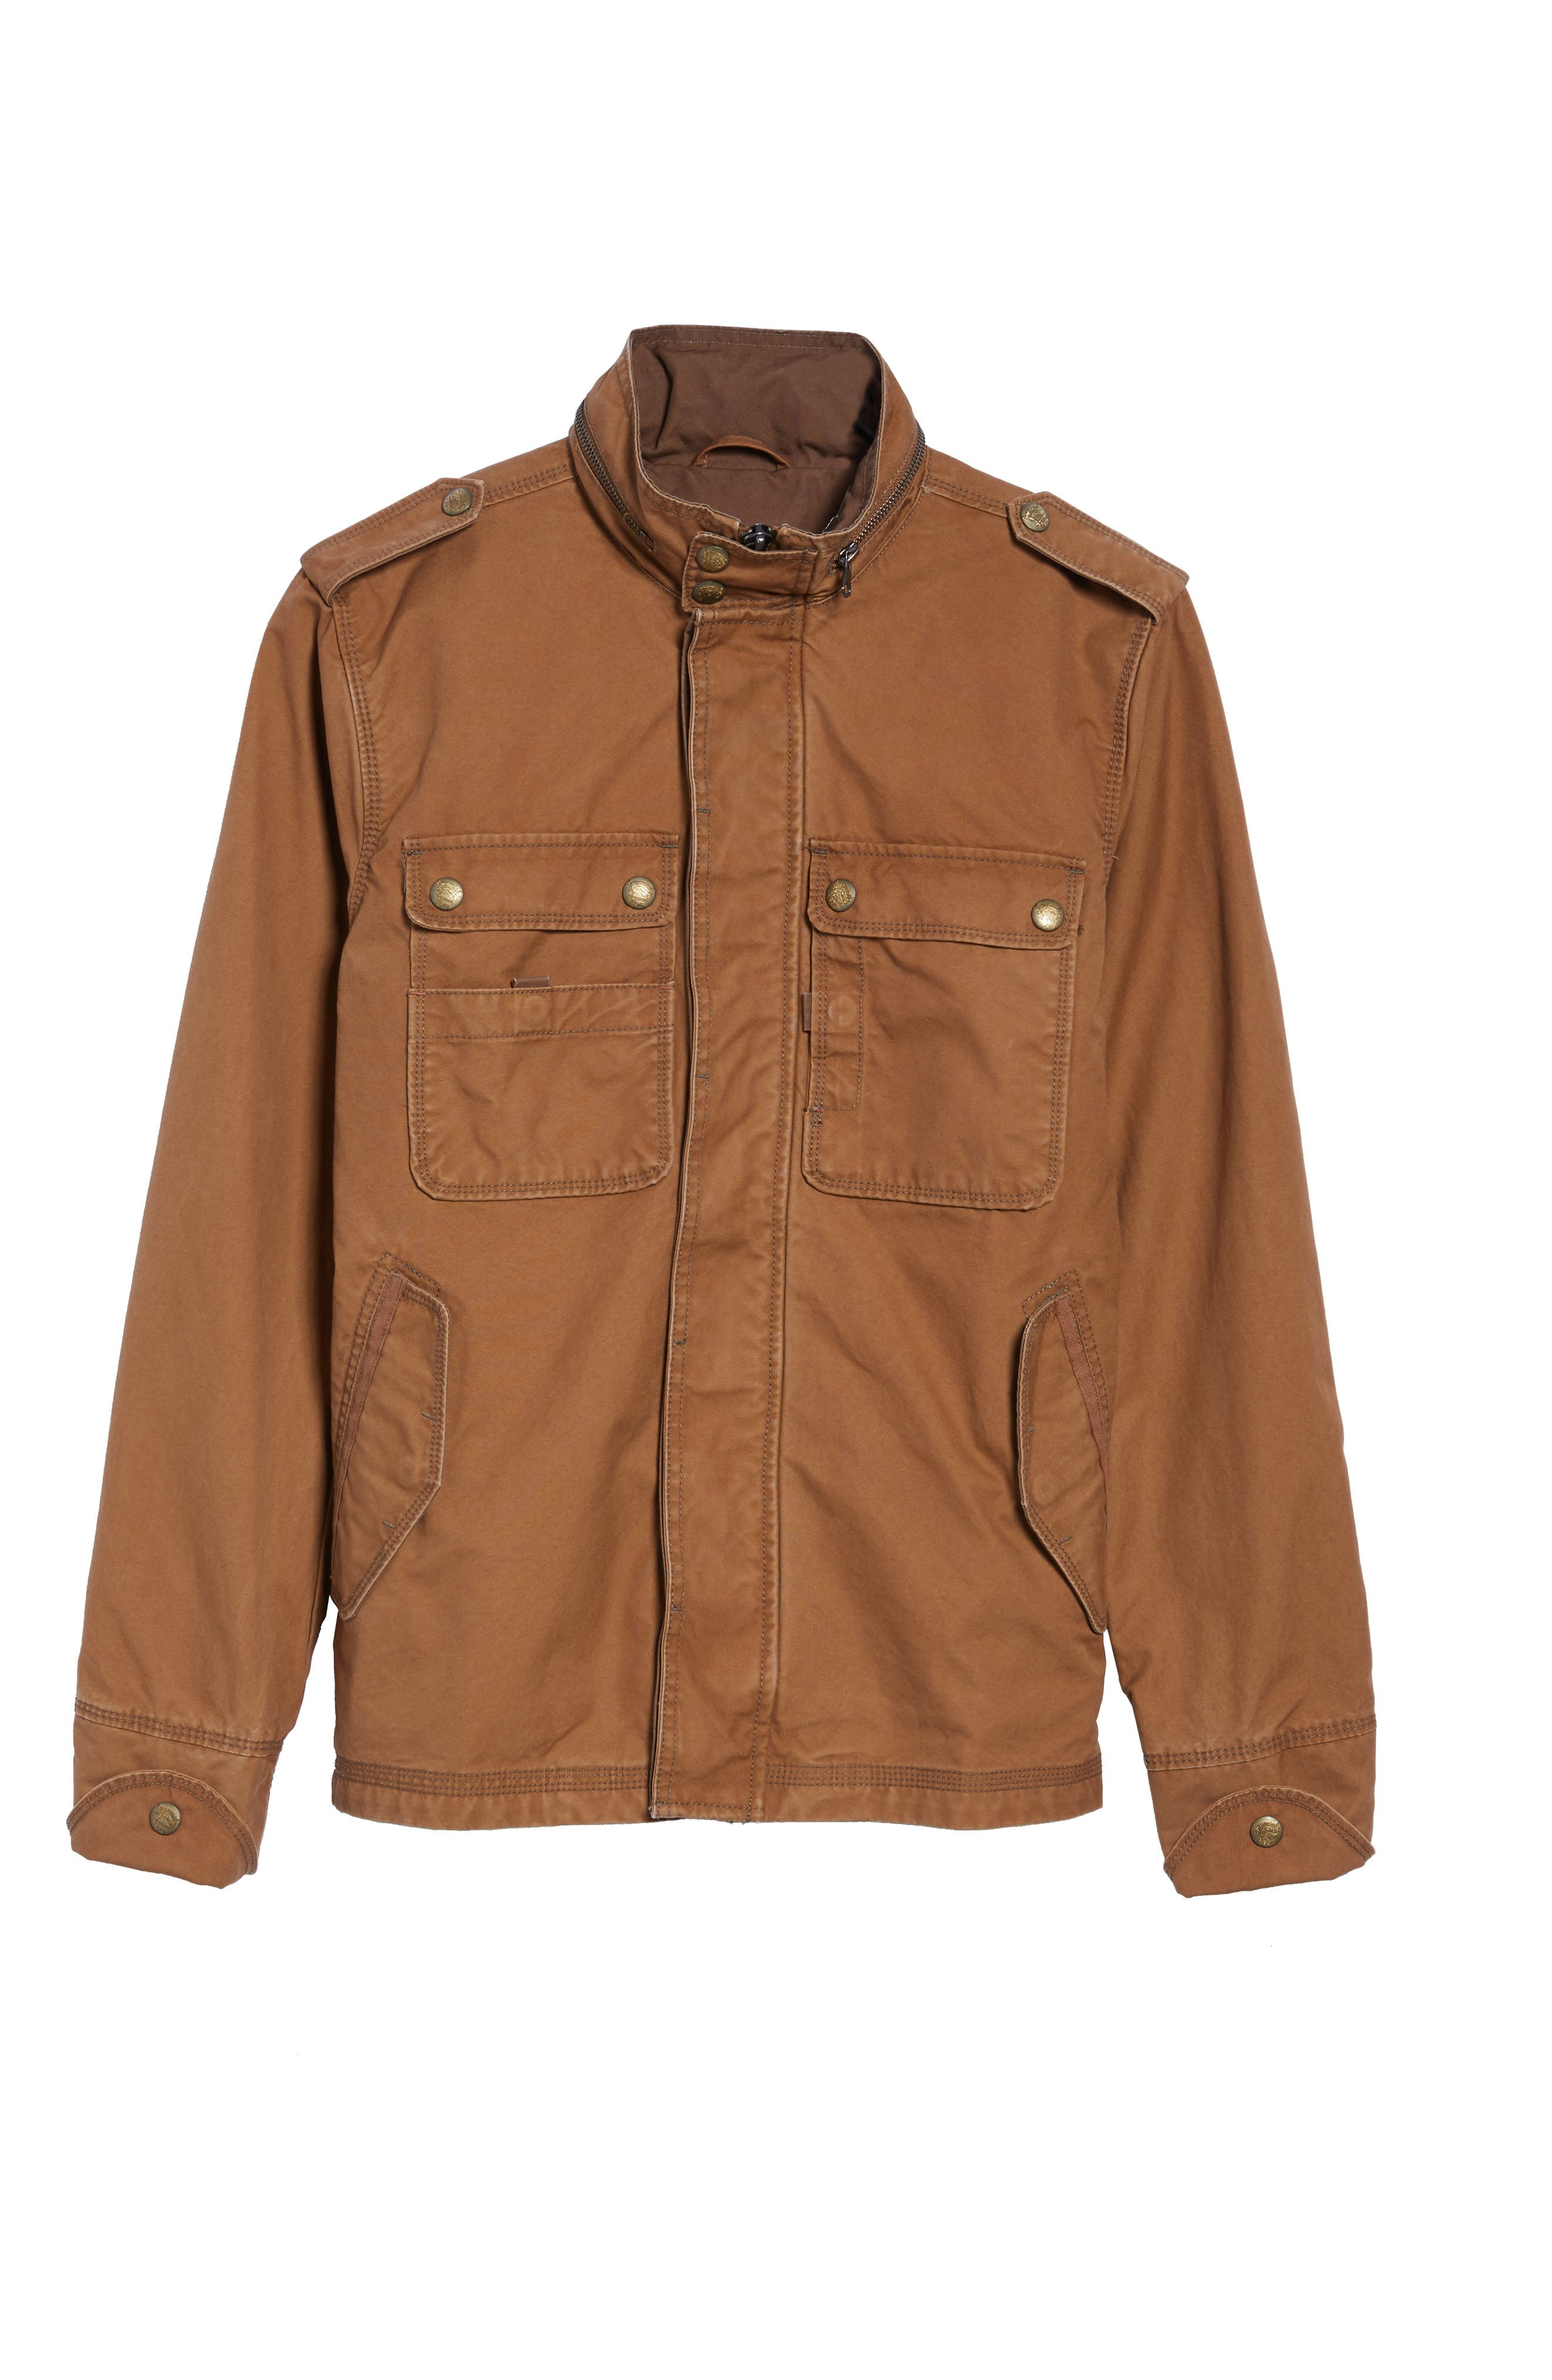 'Paxton' Military Jacket with Stowaway Hood,                             Alternate thumbnail 15, color,